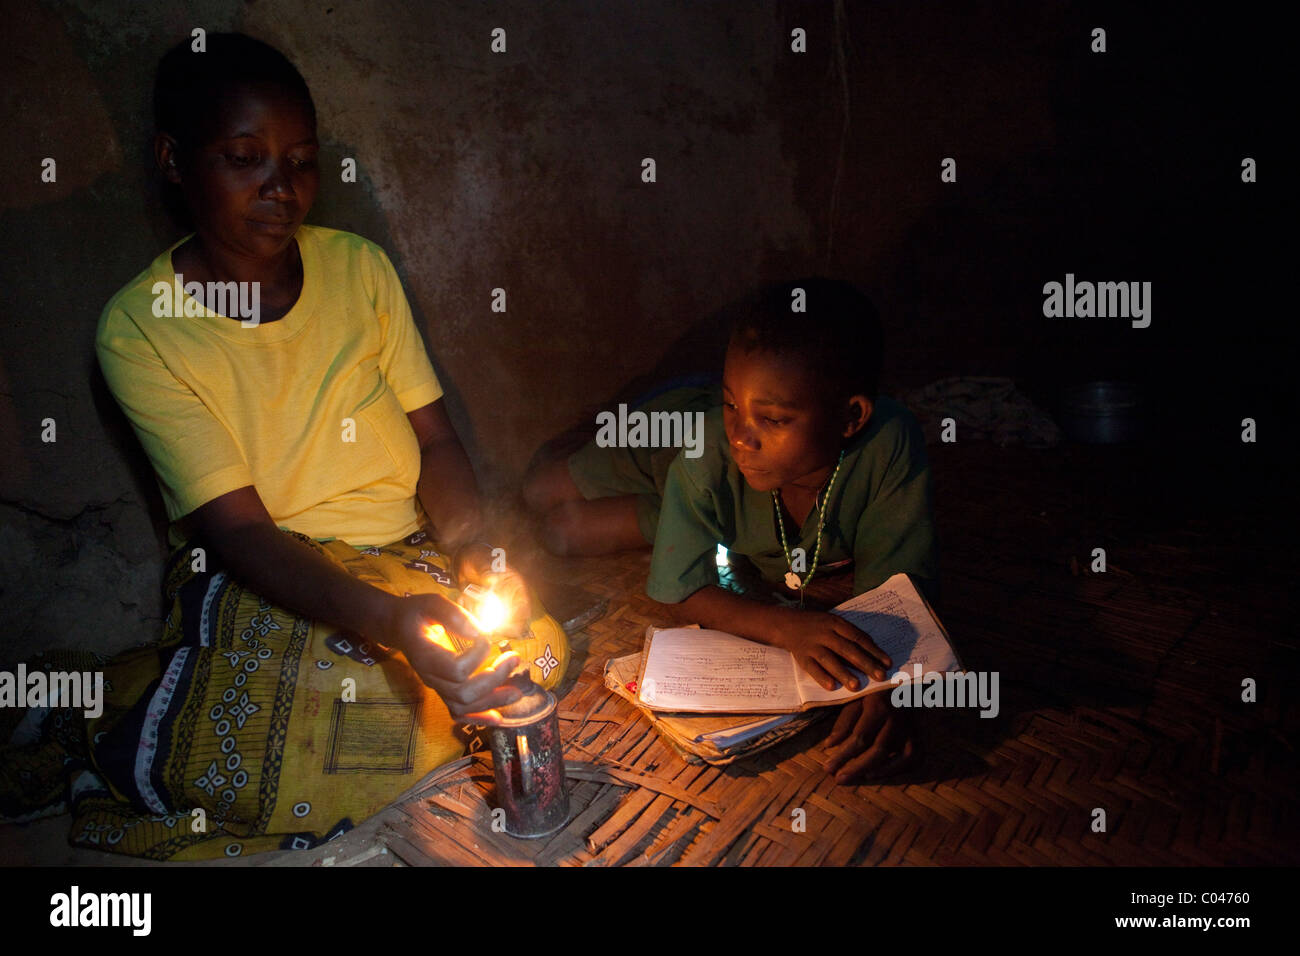 A mother lights a small lamp for her child to study by in Masaka, Uganda, East Africa. Stock Photo